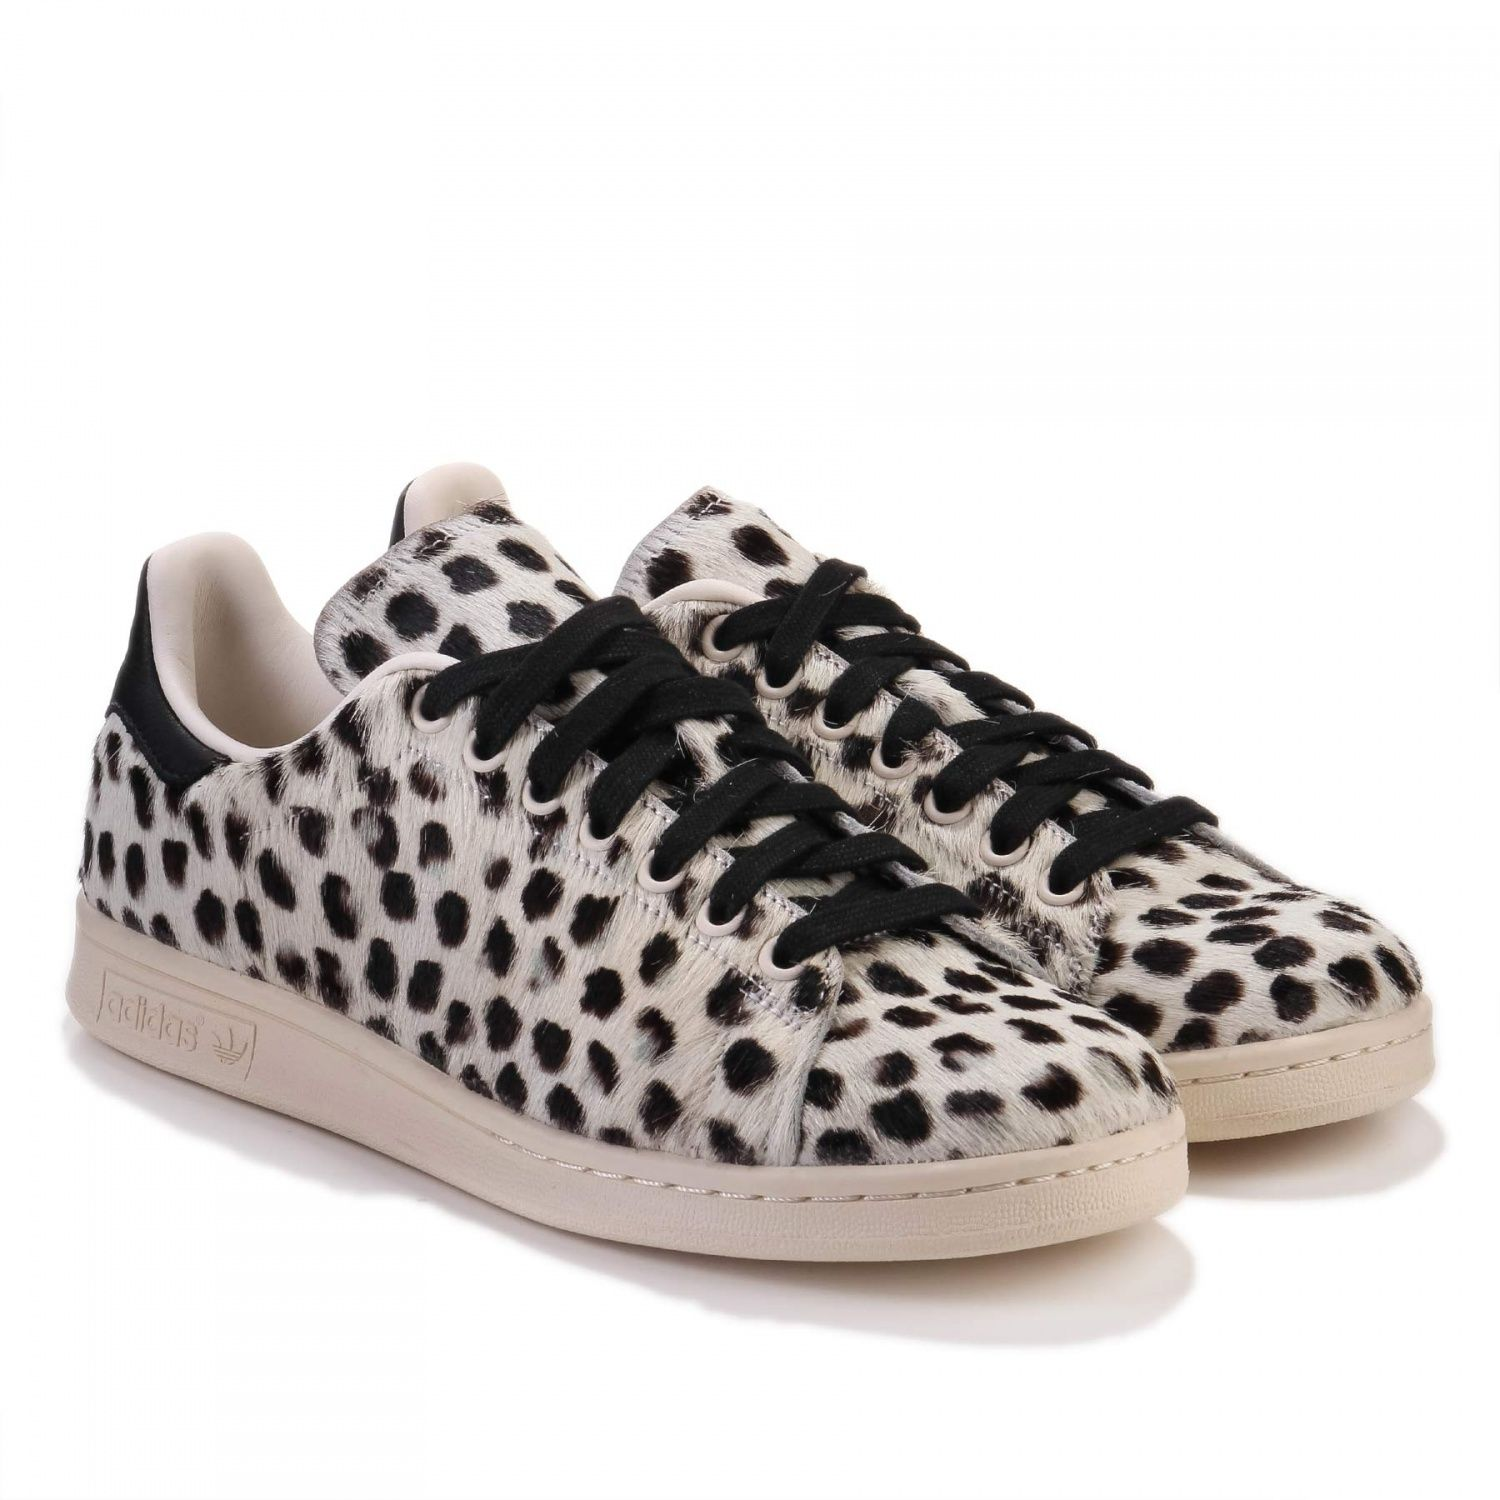 Adidas Stan Smith X Kazuki Kuraishi pony hair white/black